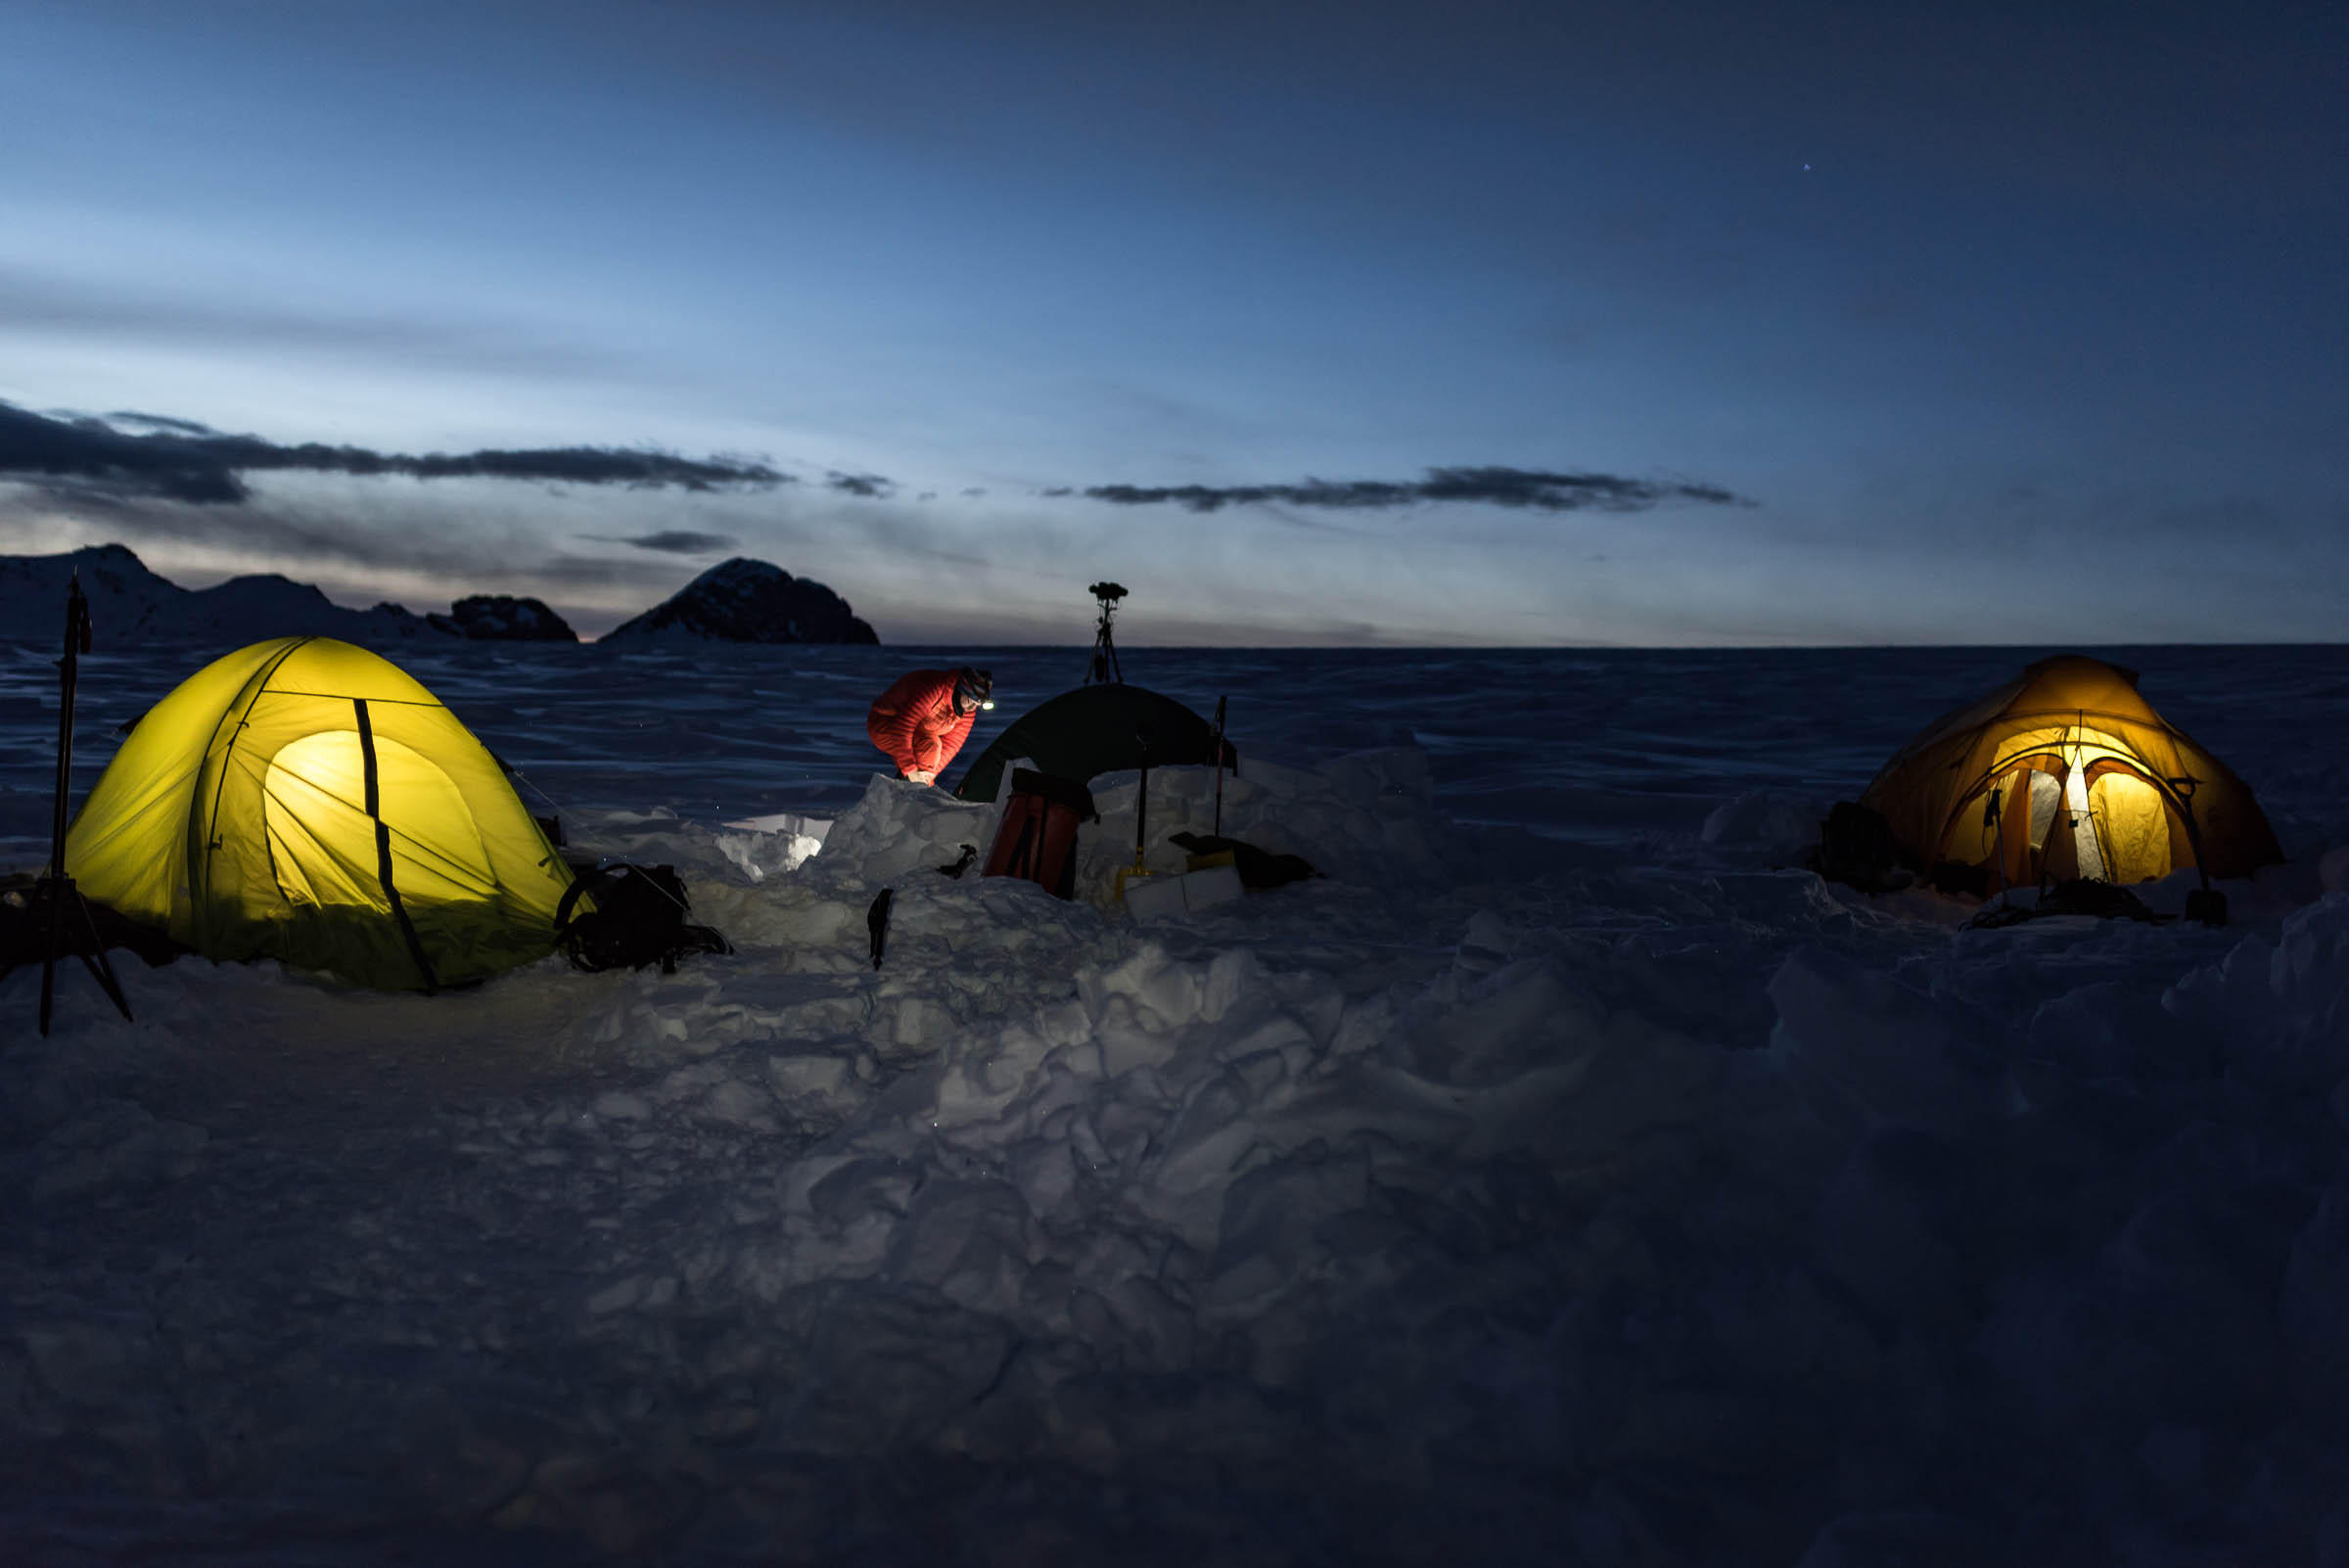 Base camp on the glacier. Photo taken at night with lights in tents.